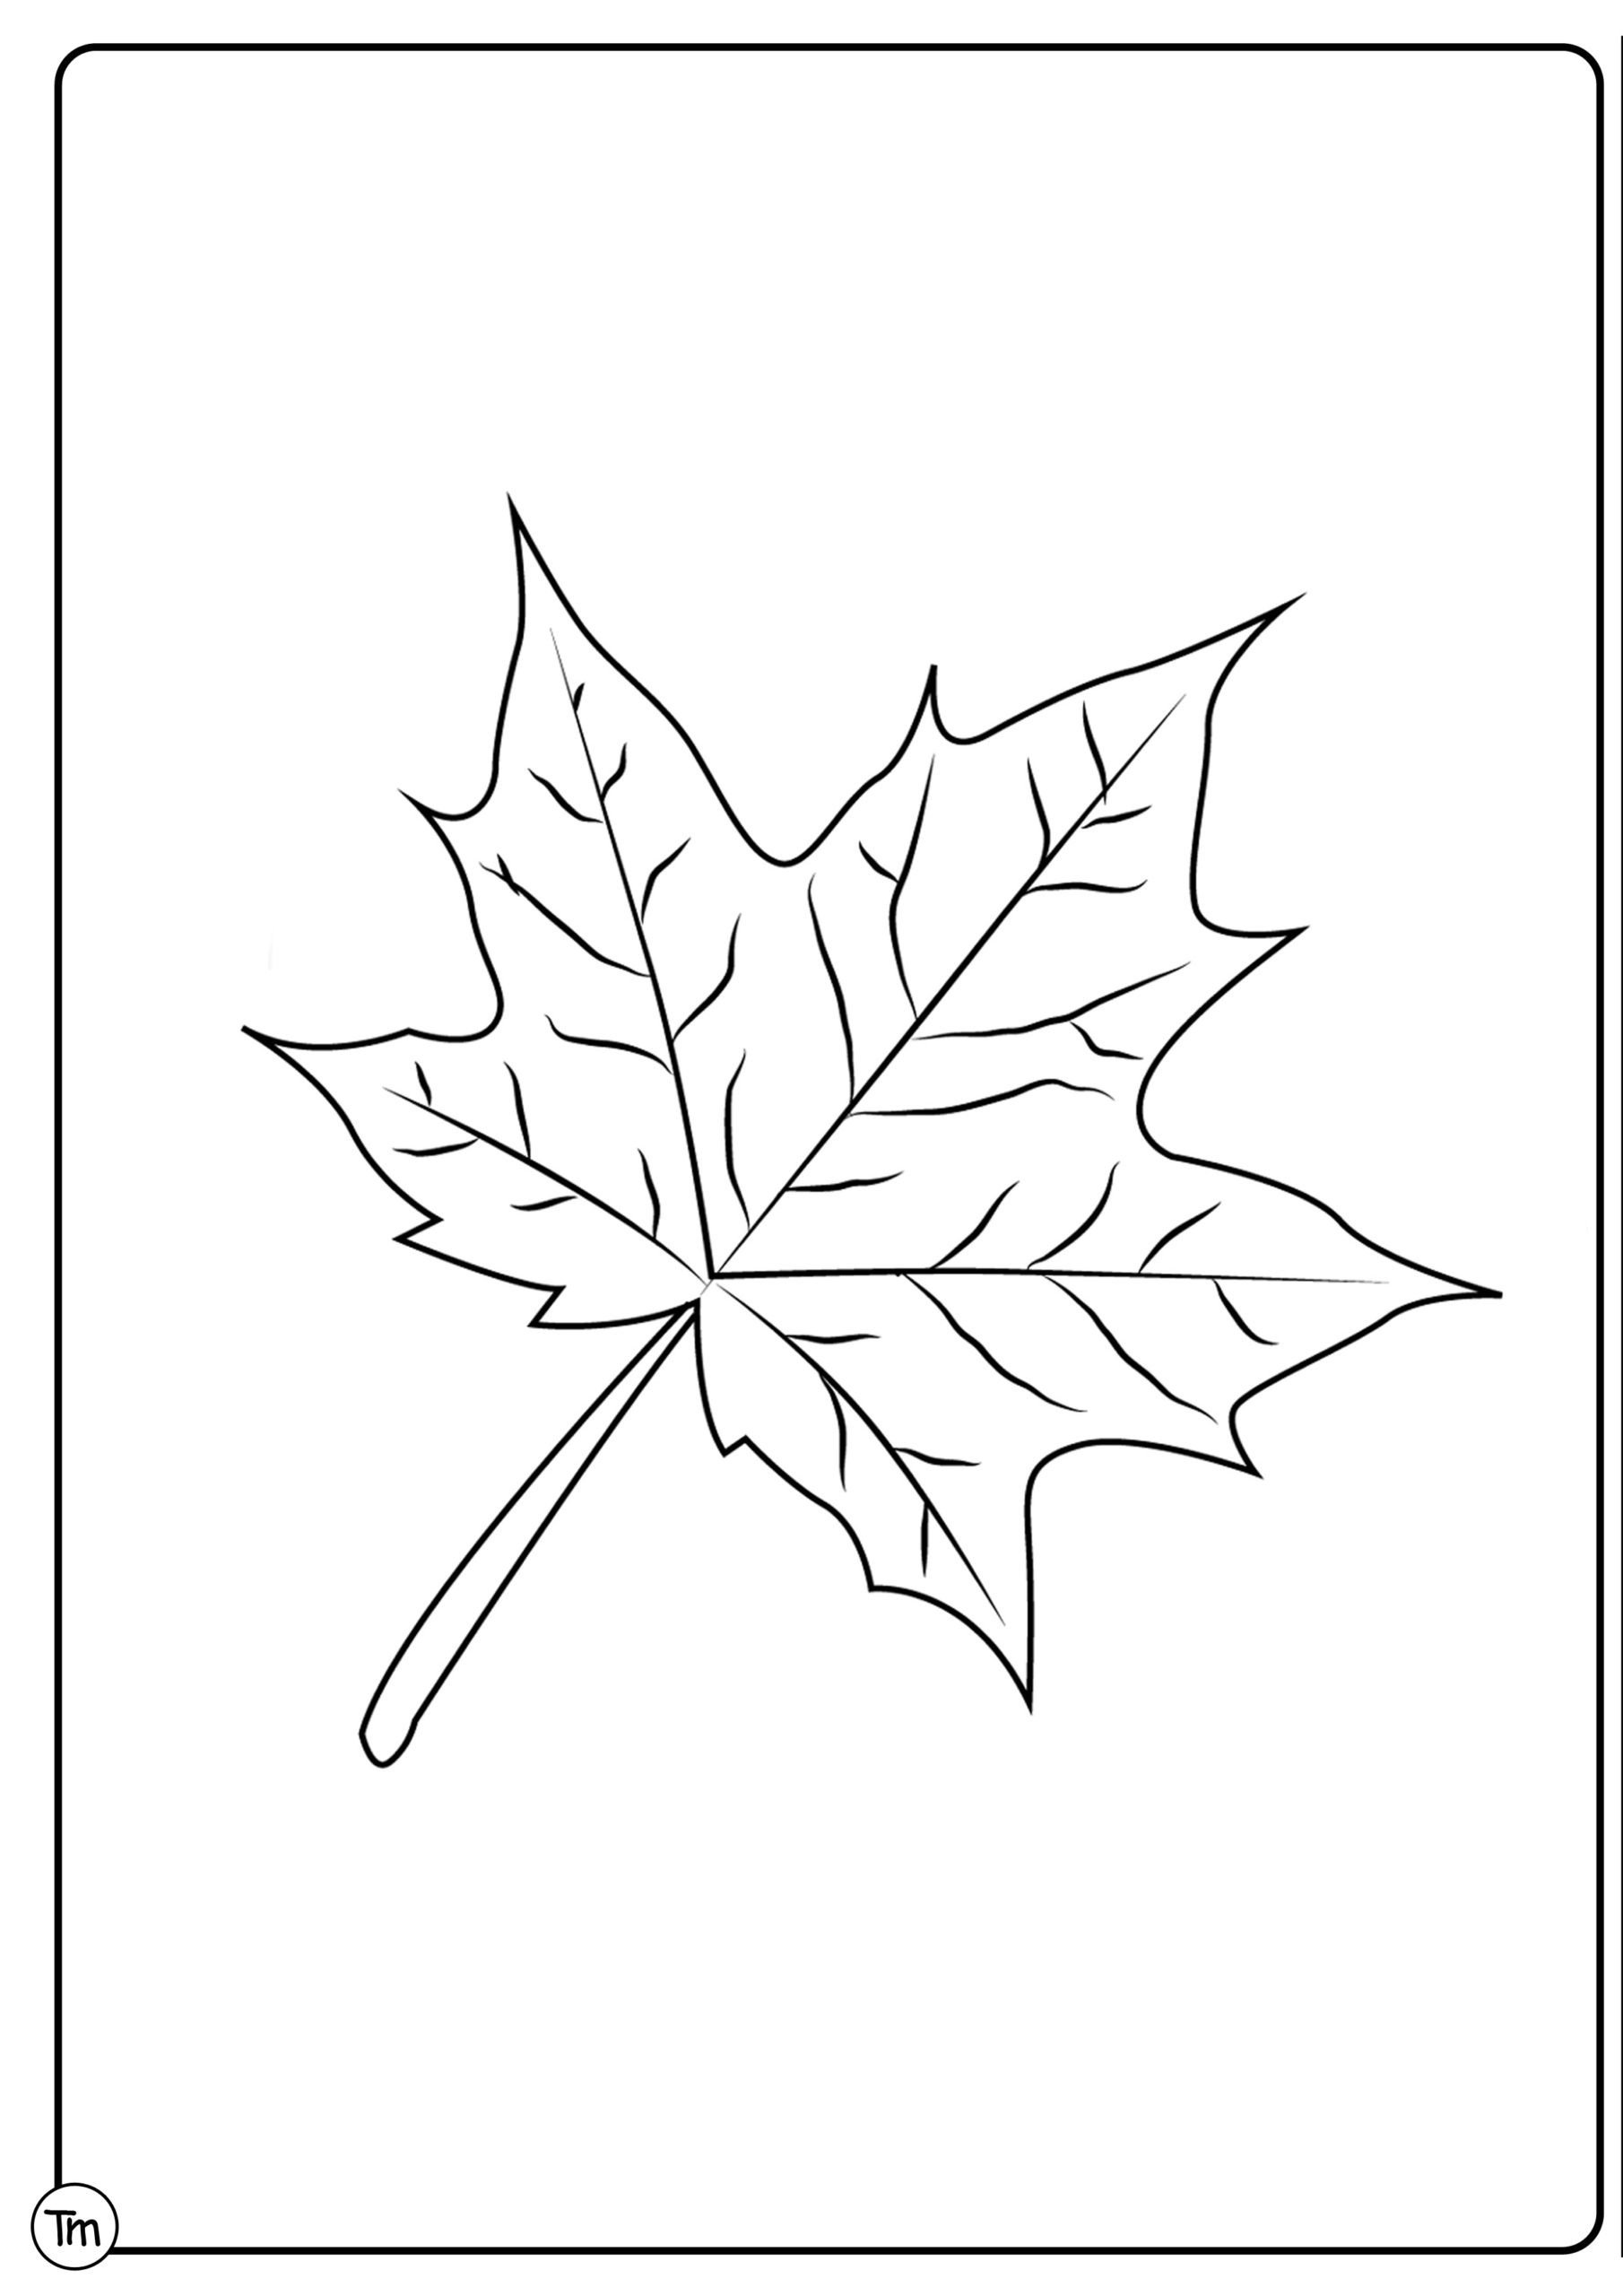 Leaf Worksheets for Kindergarten Easy Fall Craft for Preschoolers Teachersmag Leaf Worksheets